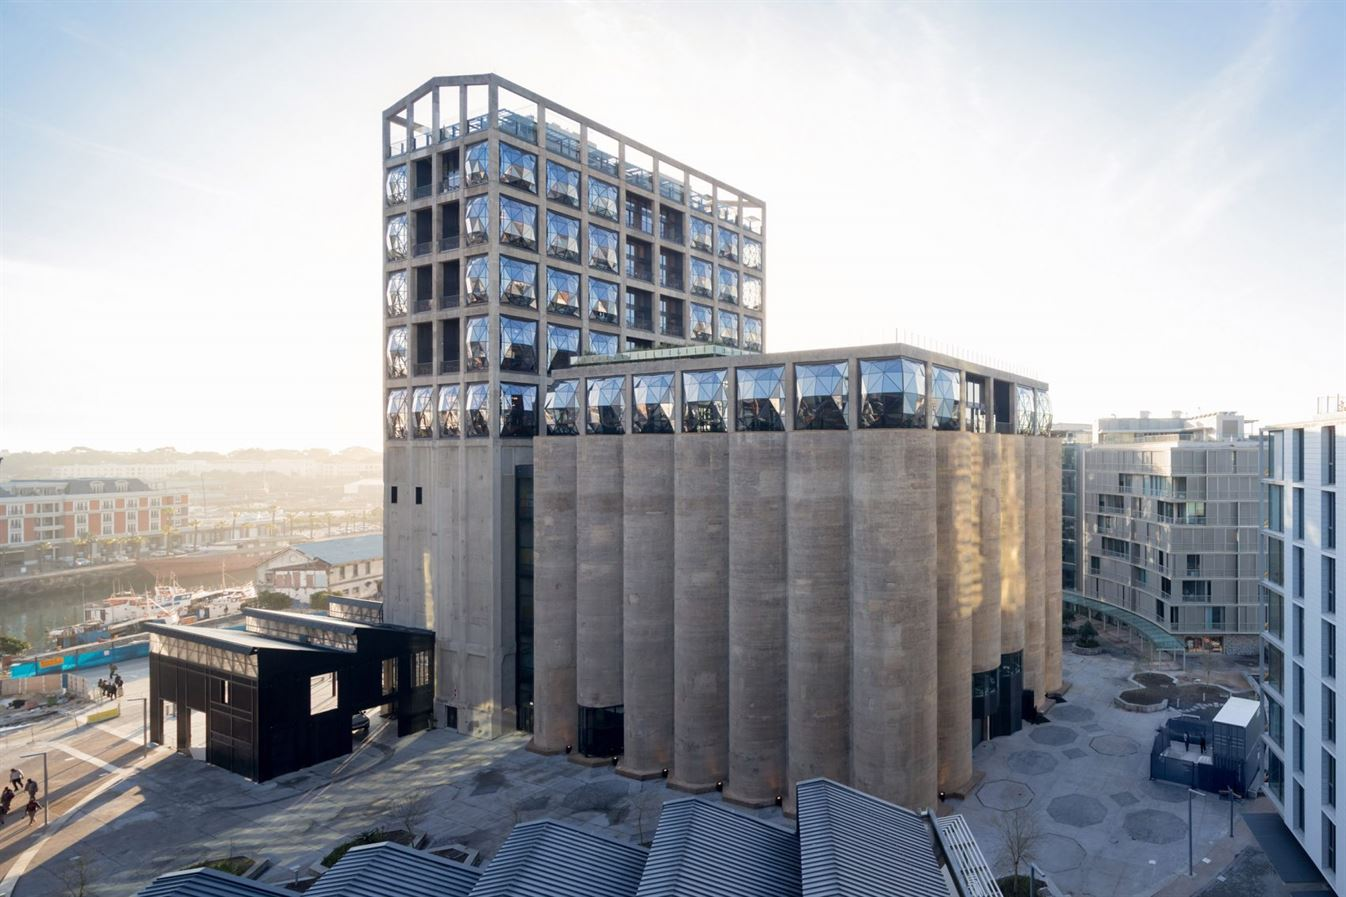 heatherwick-architecture-cultural-galleries-south-africa-v-and-a_dezeen_2364_col_2-1704x1136